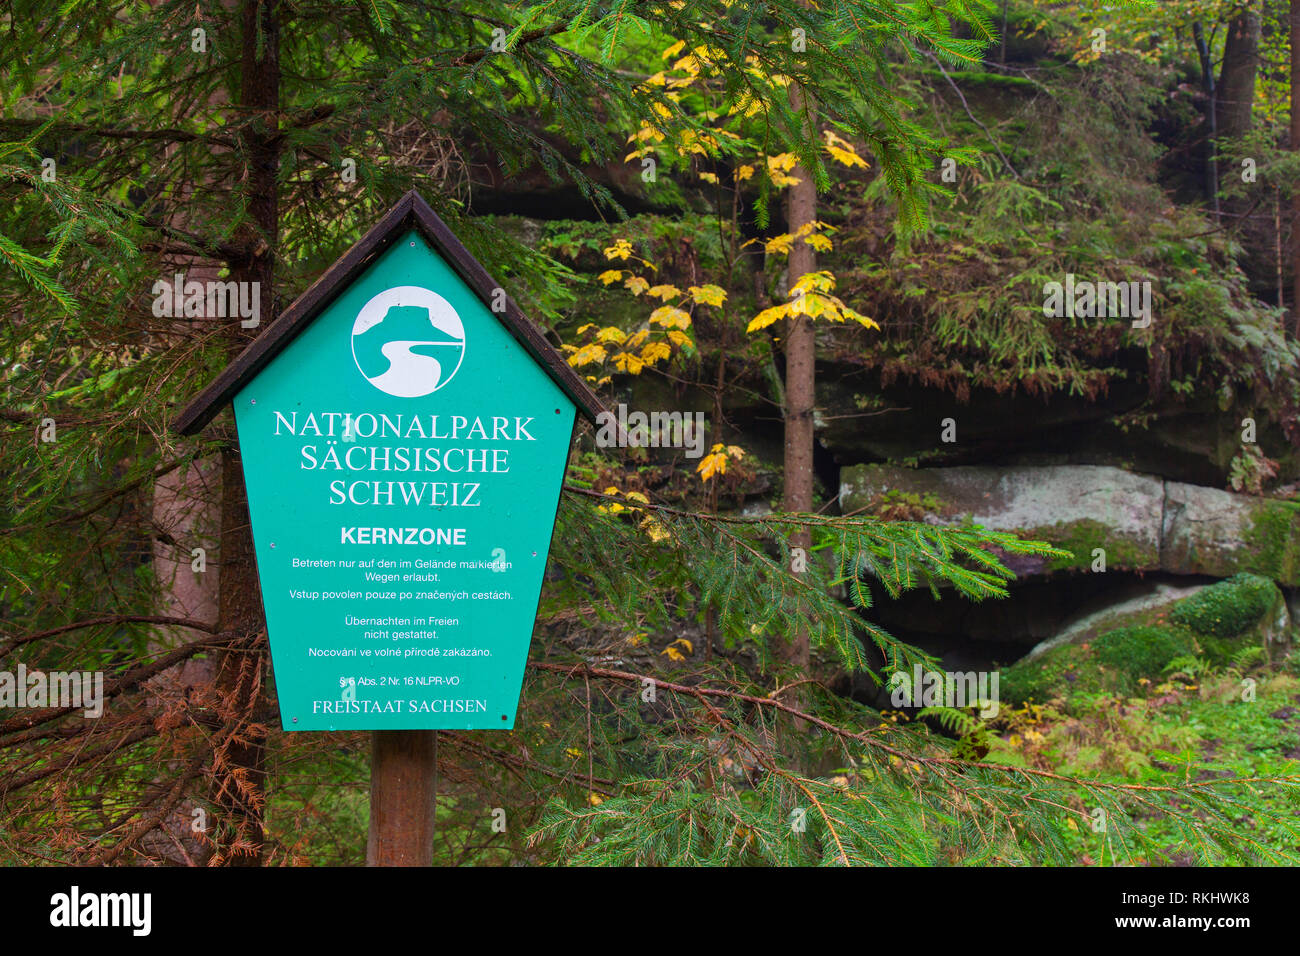 Sign with logo of the Saxon Switzerland National Park / Nationalpark Sächsische Schweiz, Saxony, Germany - Stock Image